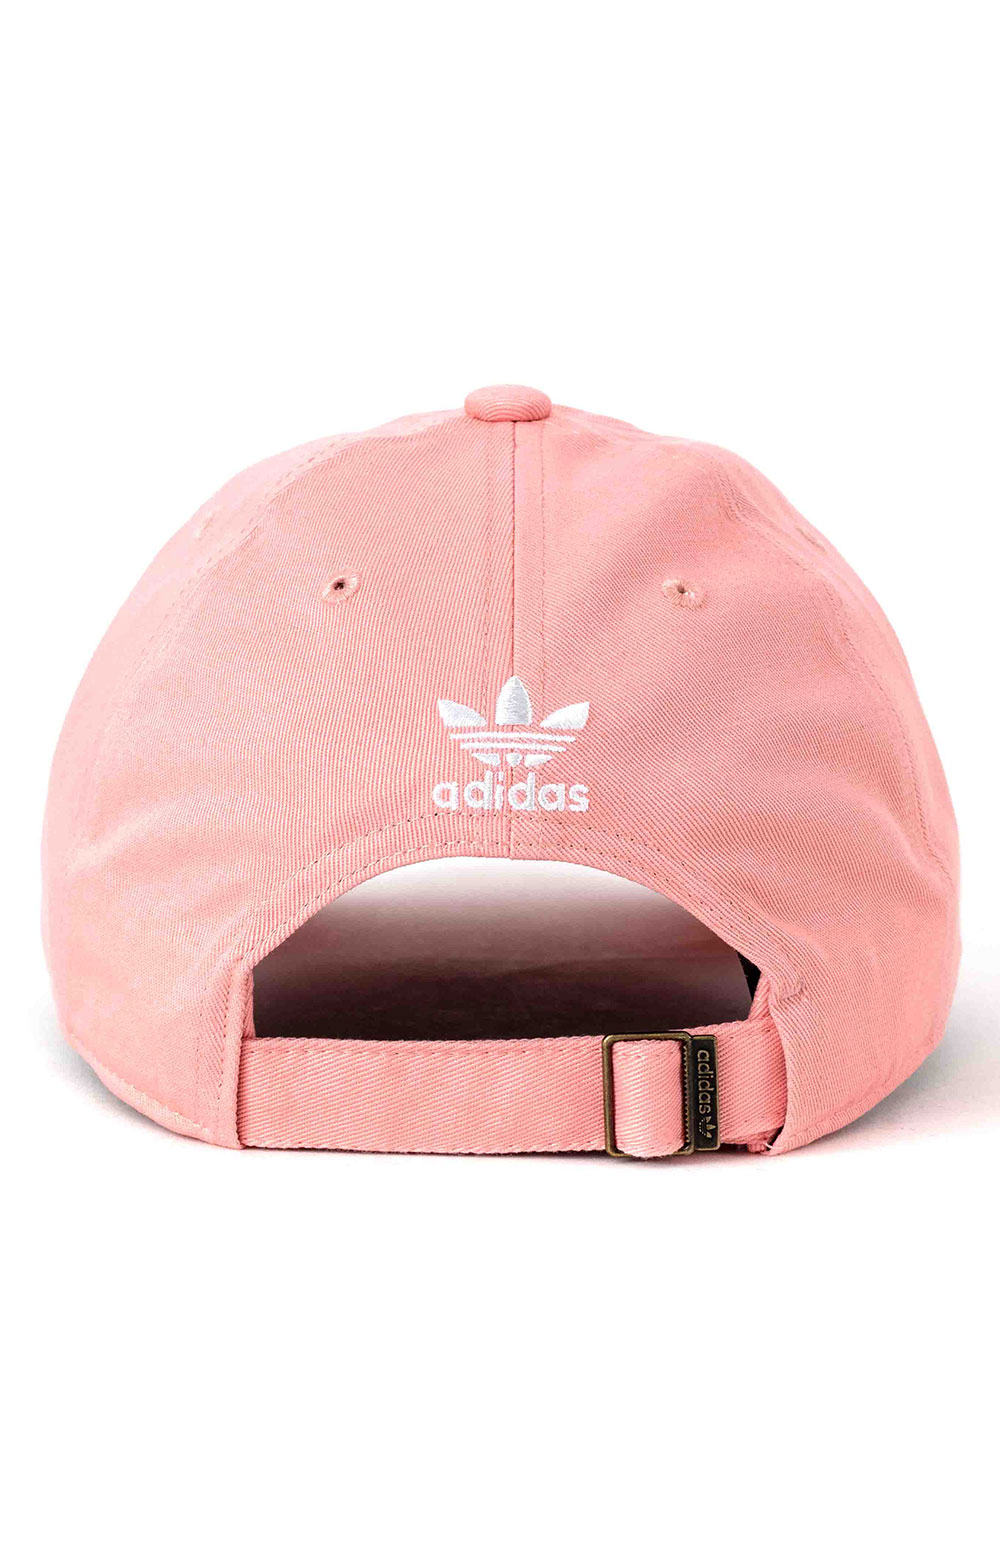 Originals Relaxed Strap-Back Hat - Glory Pink/White 3